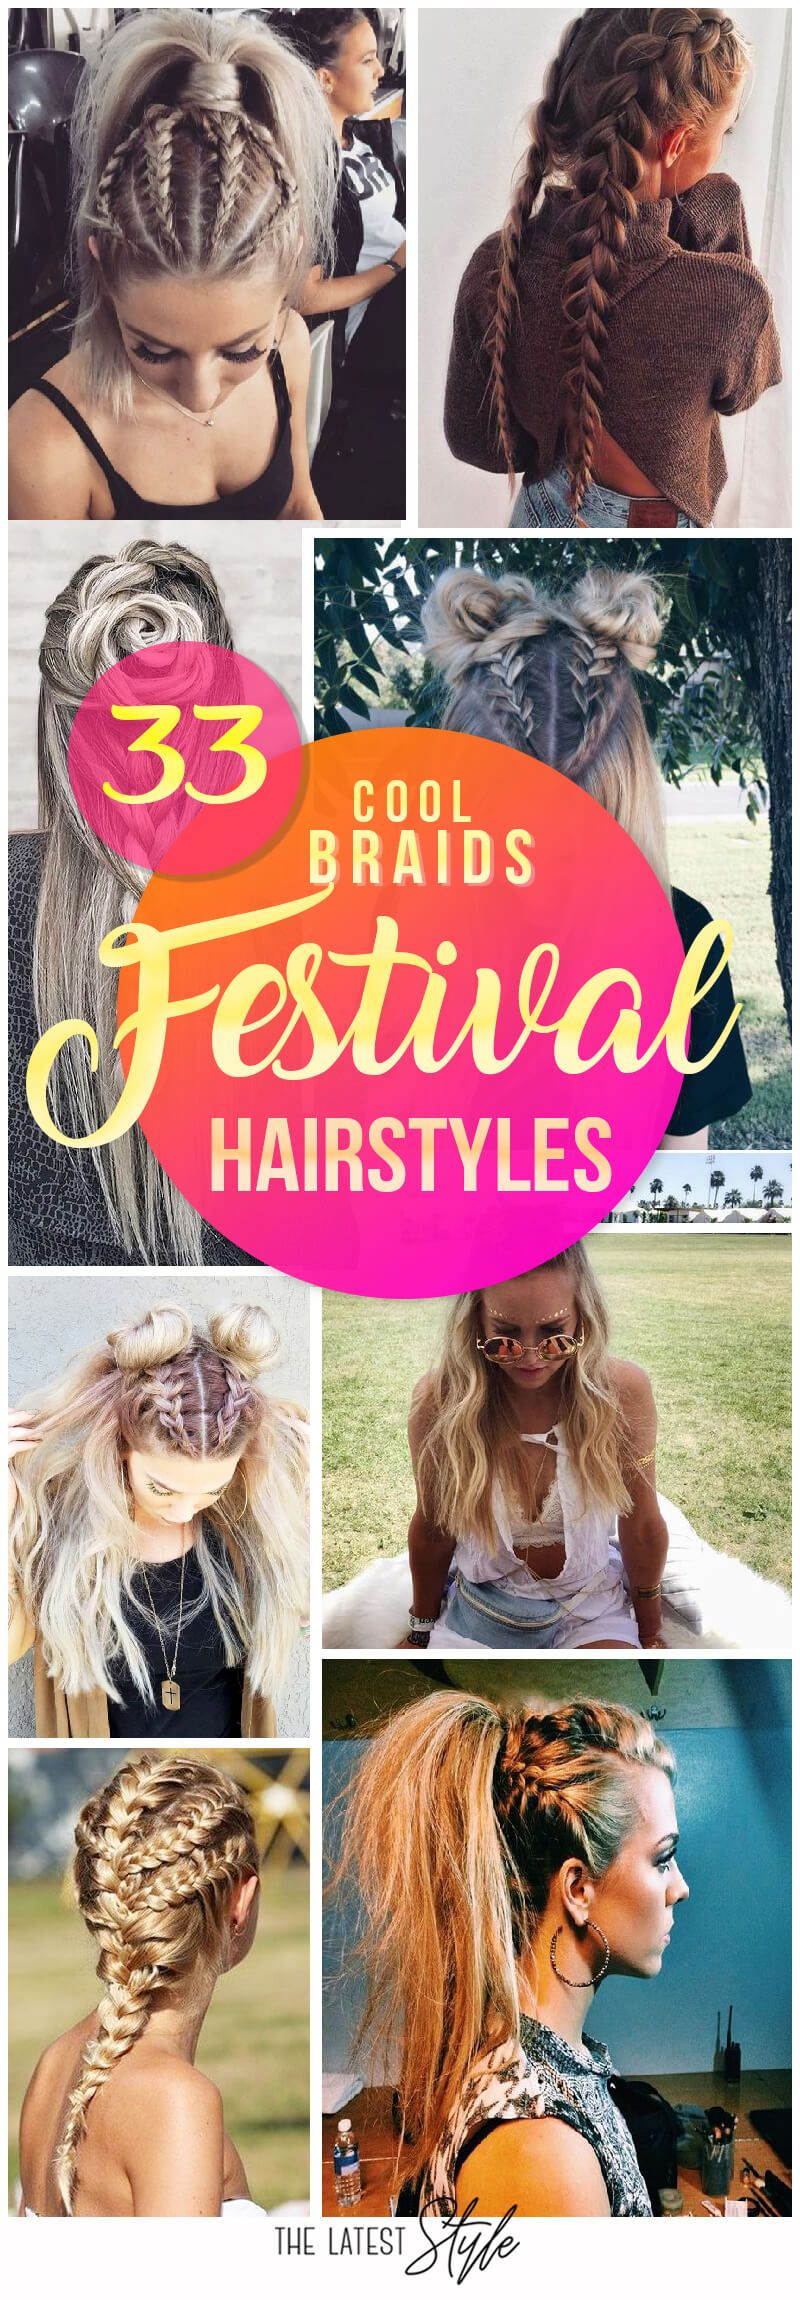 cool braids festival hairstyles festival hairstyles hair style